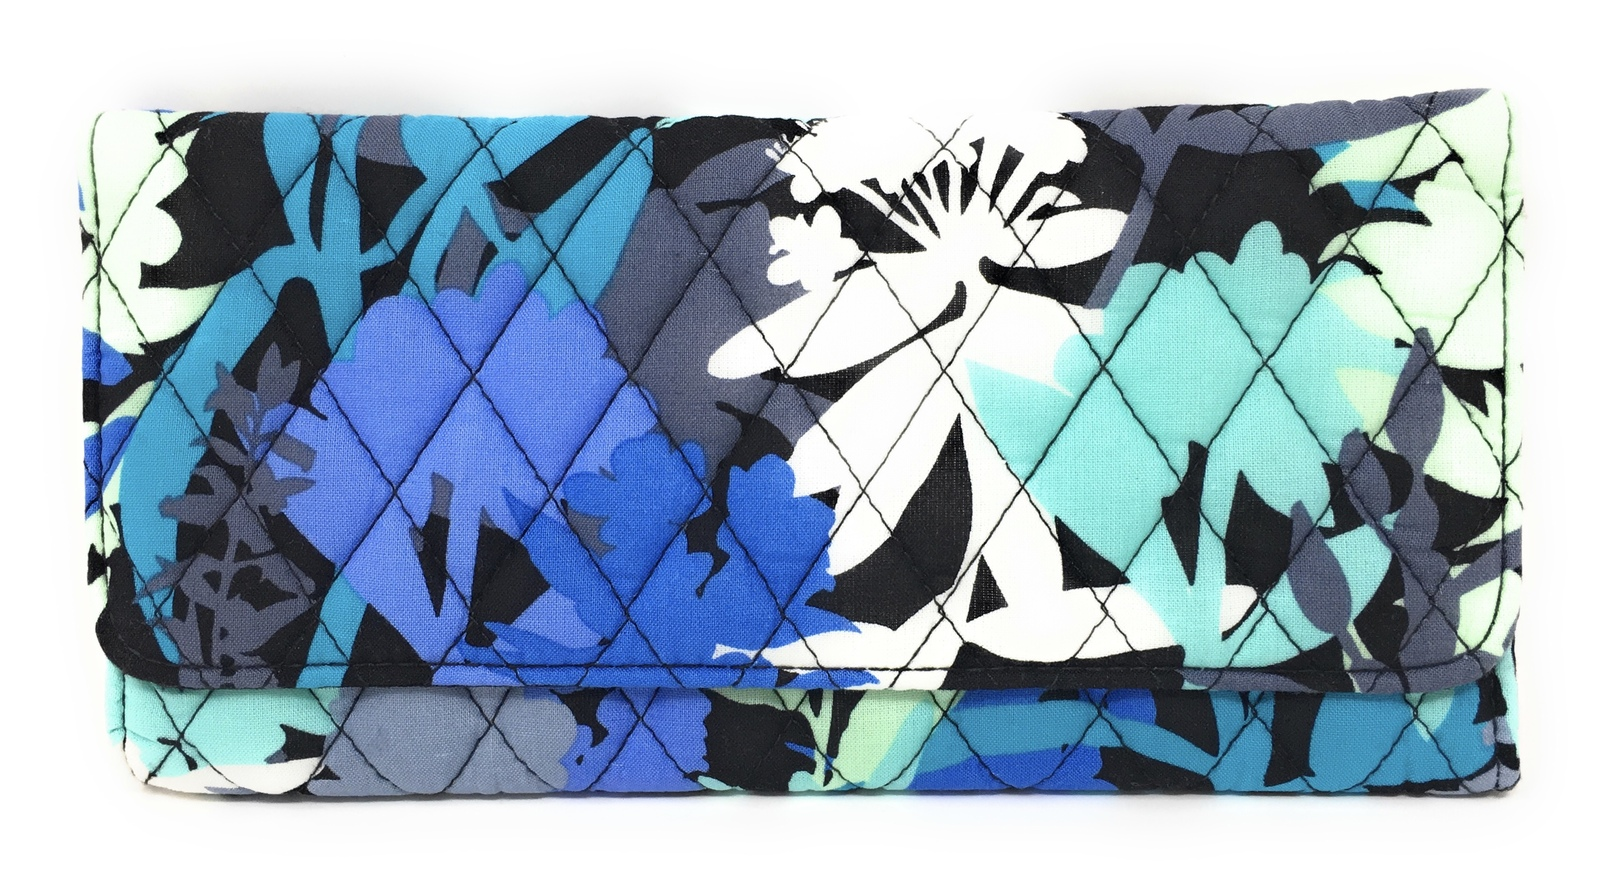 Vera Bradley Trifold Wallet Camofloral with Solid Interior - NWT  - $39.95